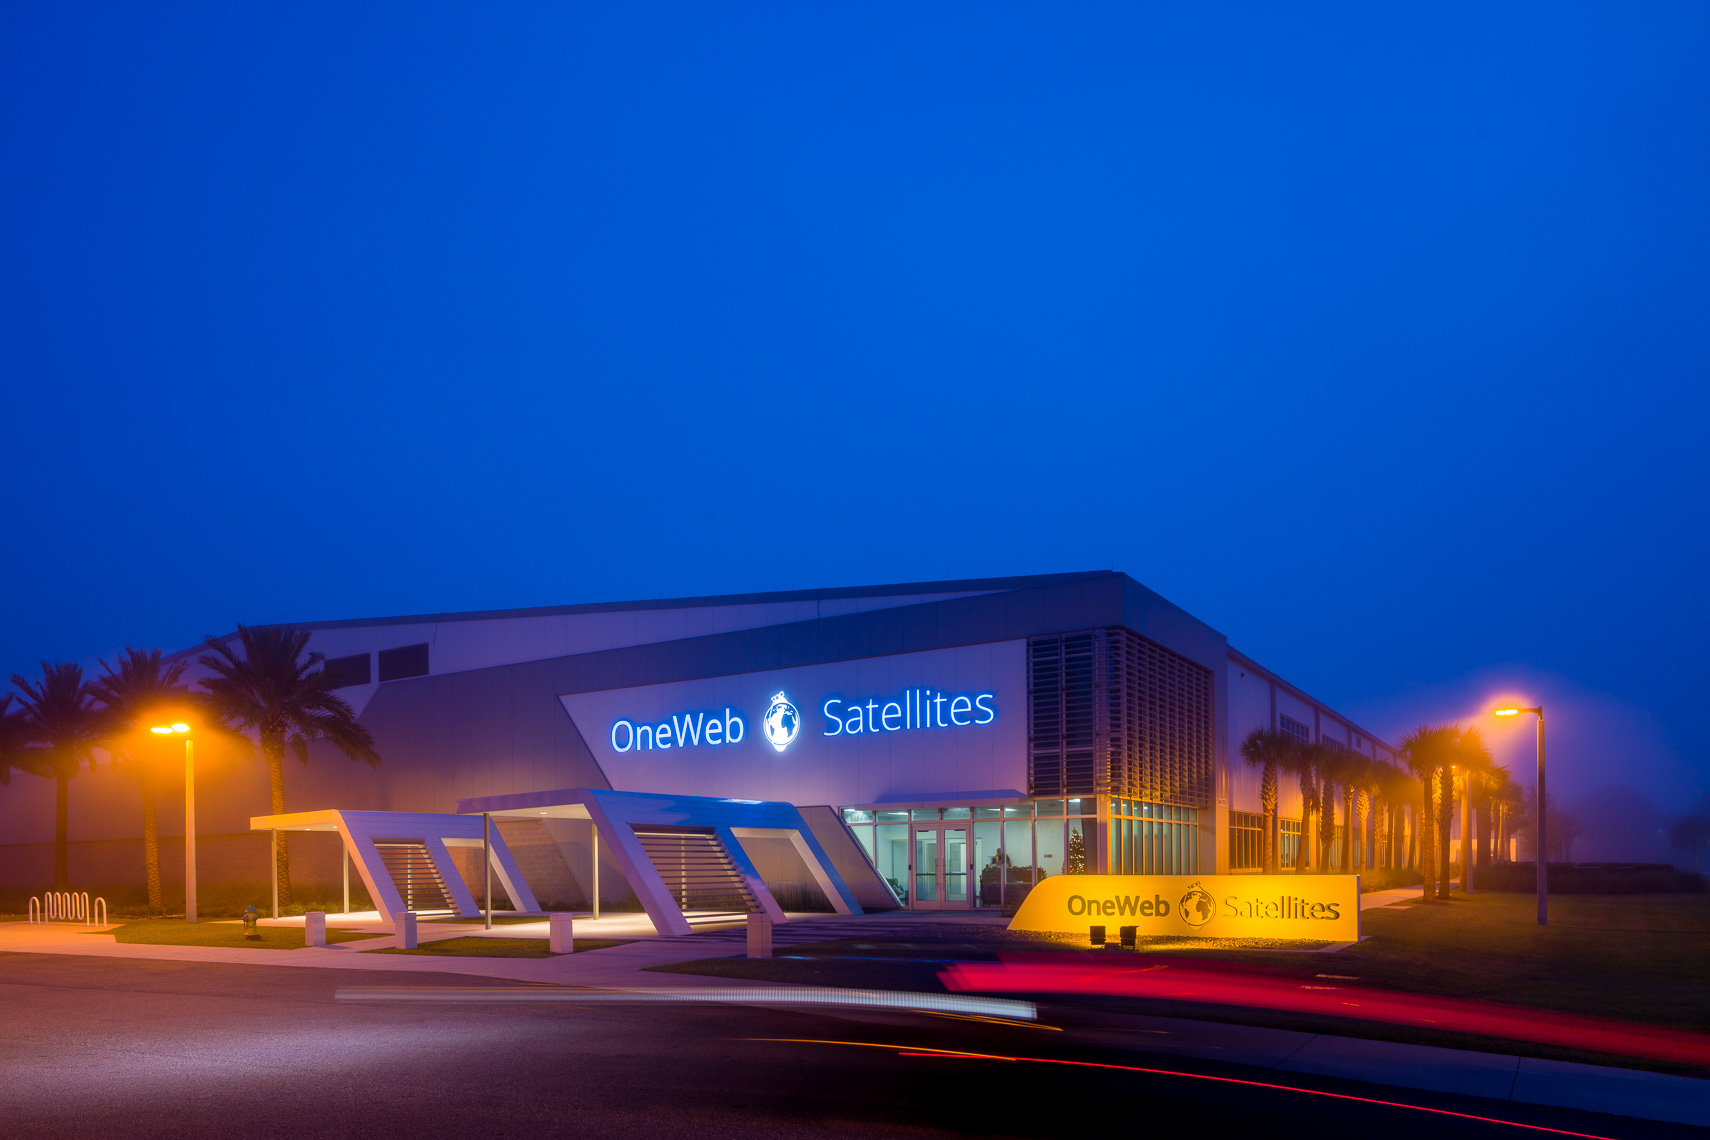 Exterior of OneWeb Satellites